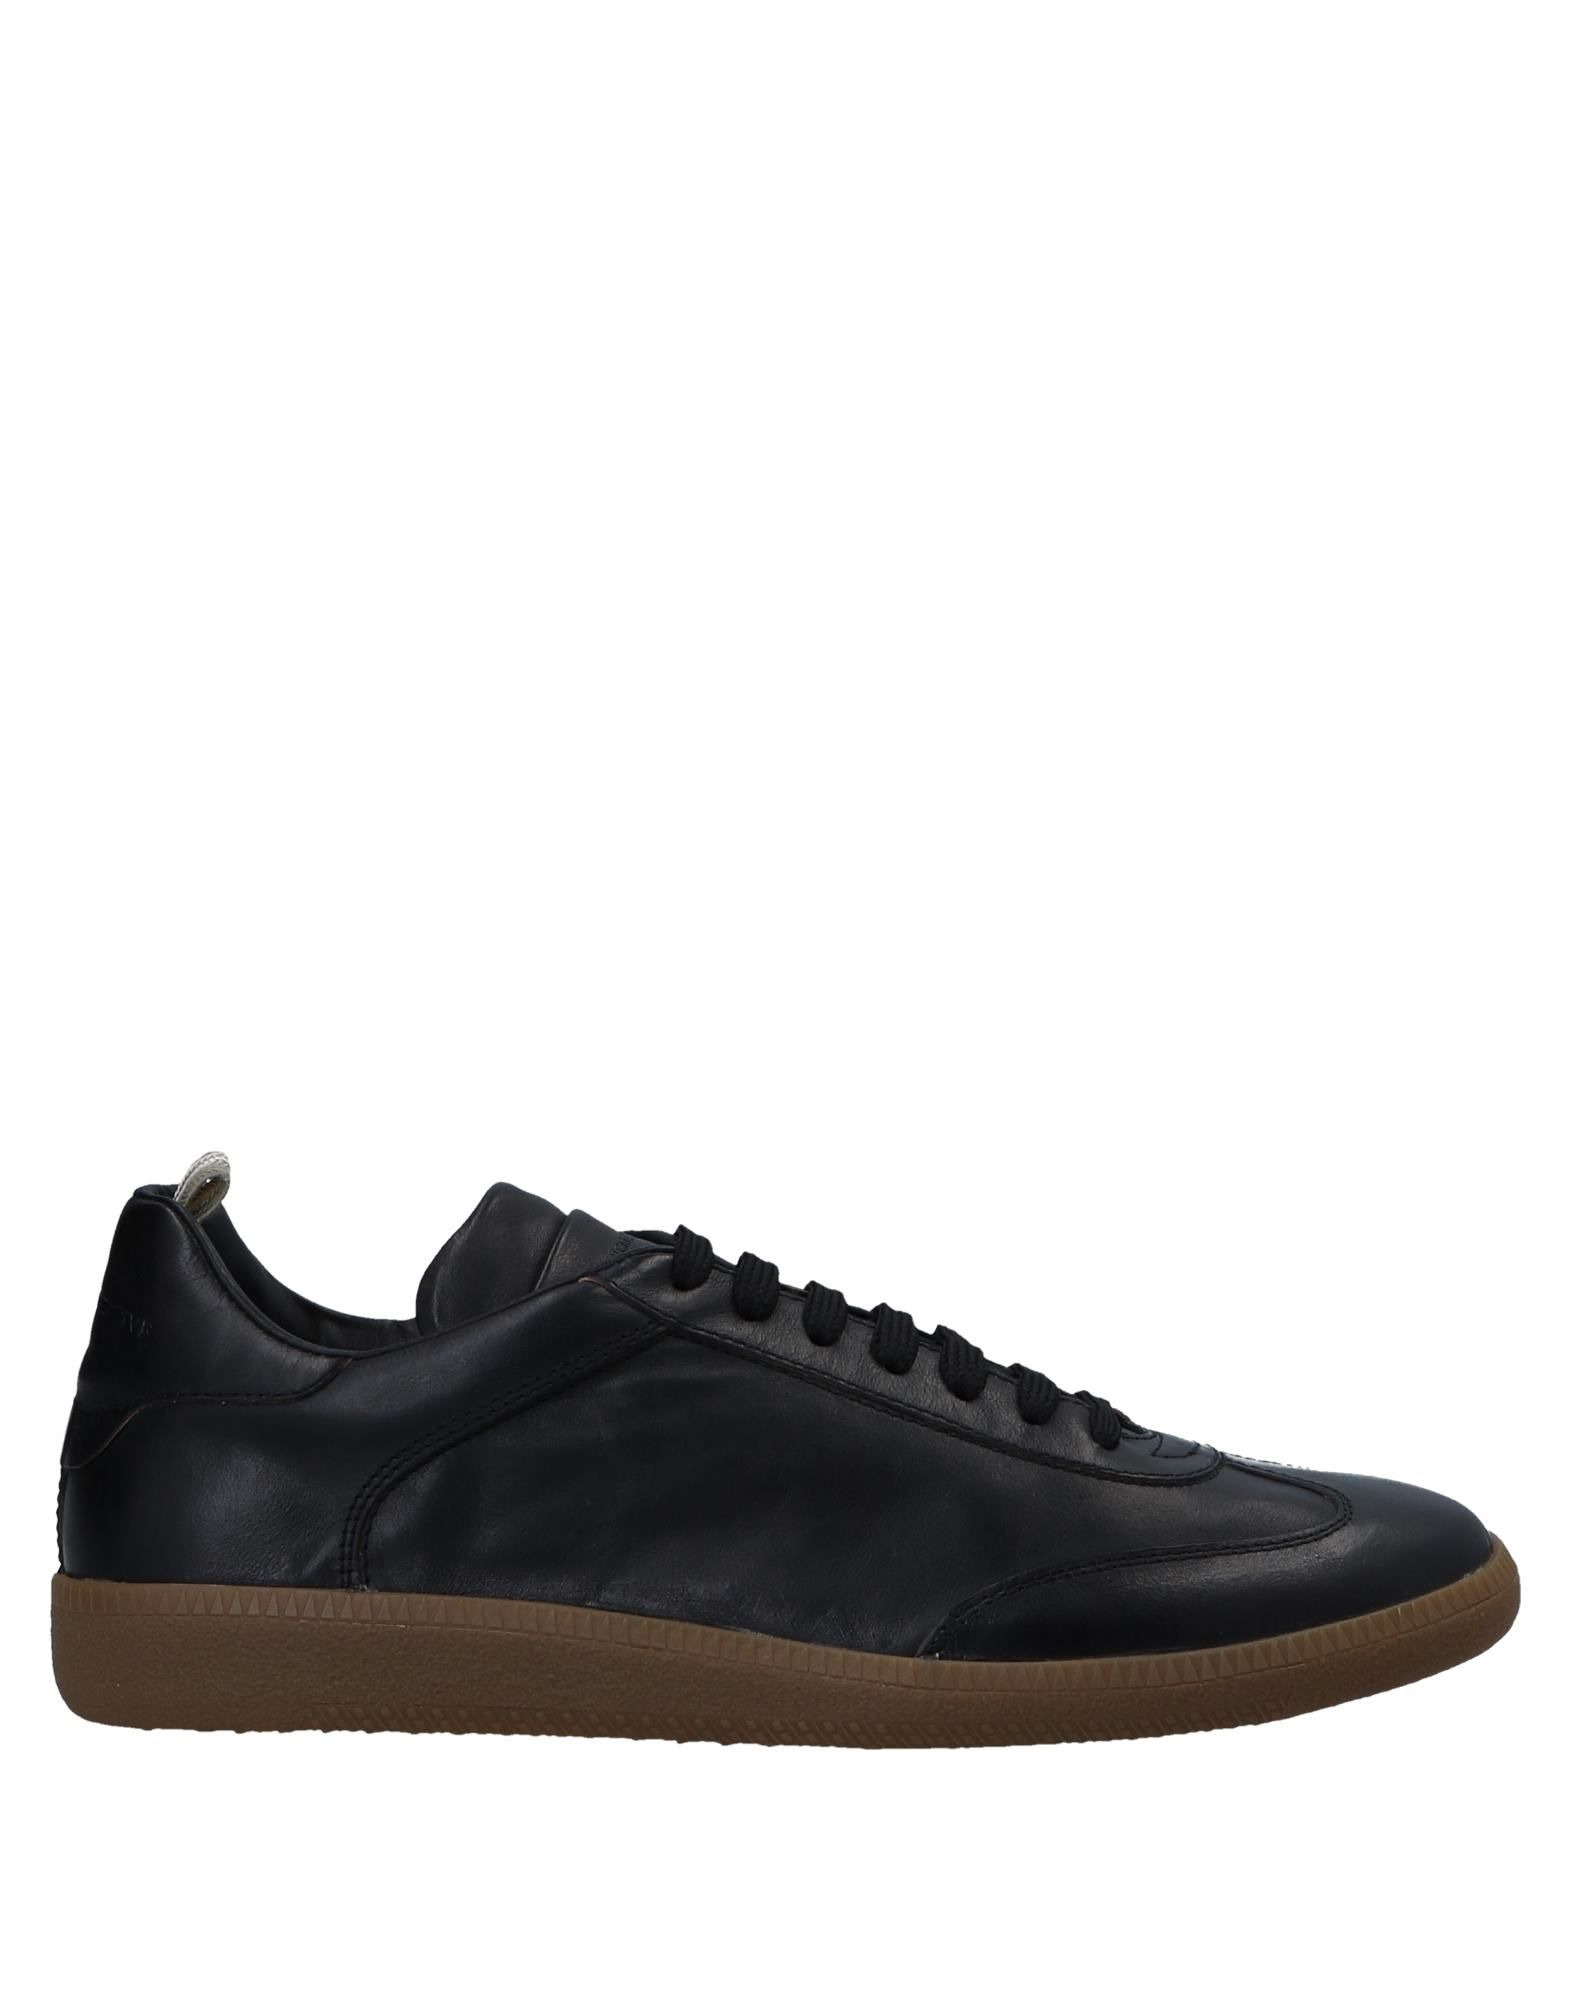 OFFICINE CREATIVE | OFFICINE CREATIVE ITALIA Low-tops & sneakers 11551315 | Goxip